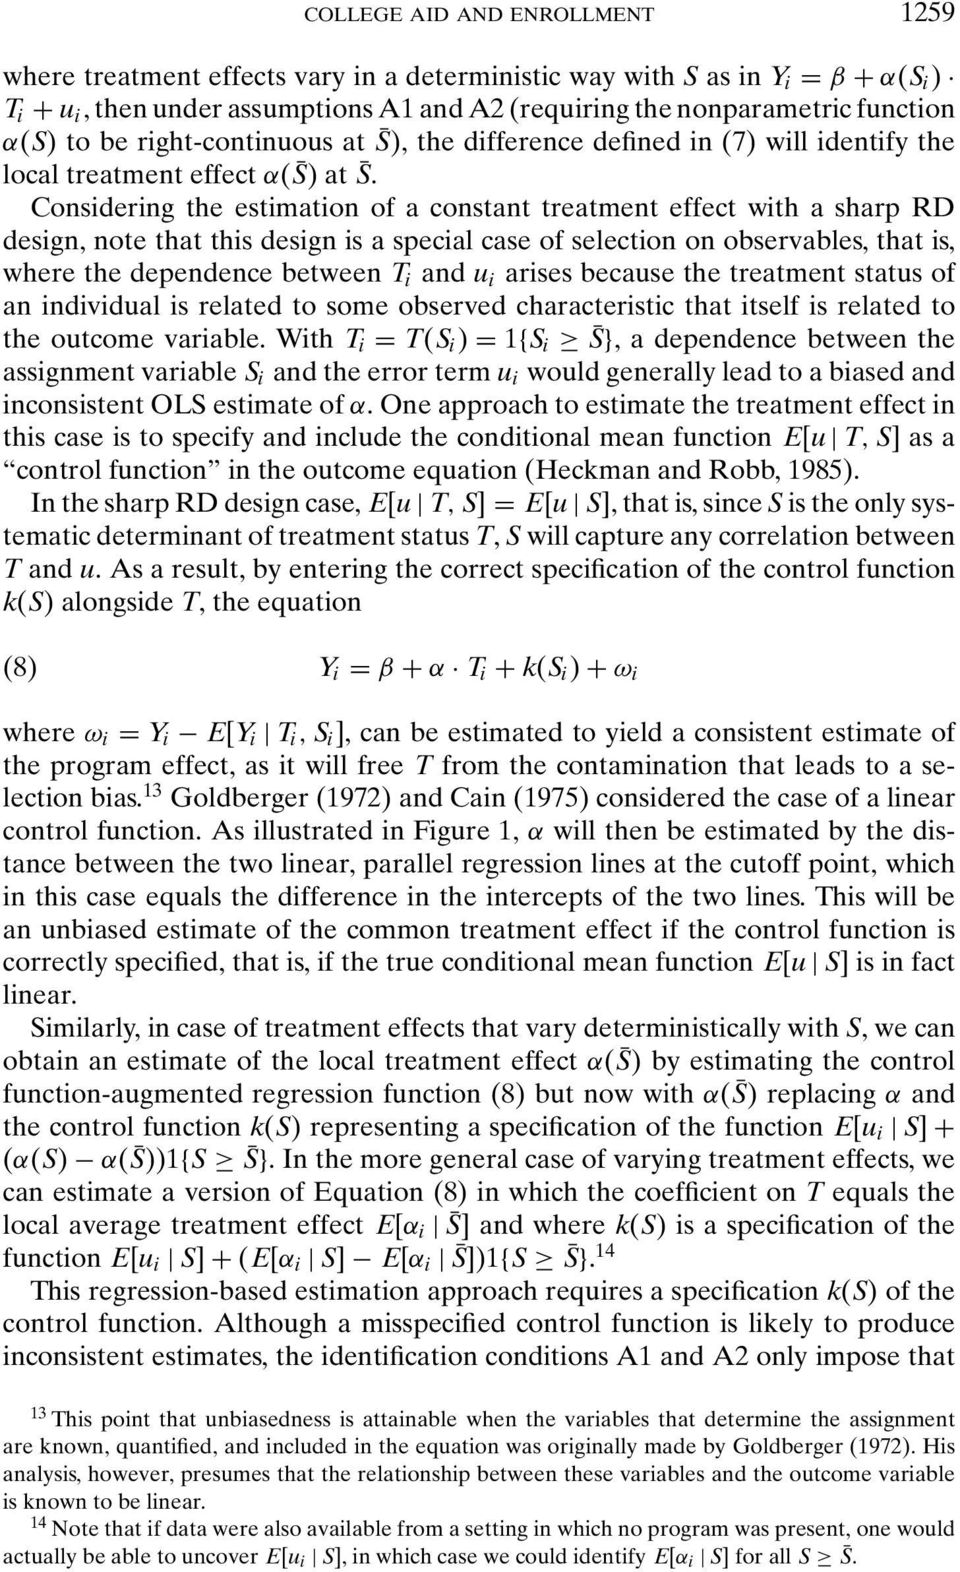 Considering the estimation of a constant treatment effect with a sharp RD design, note that this design is a special case of selection on observables, that is, where the dependence between T i and u